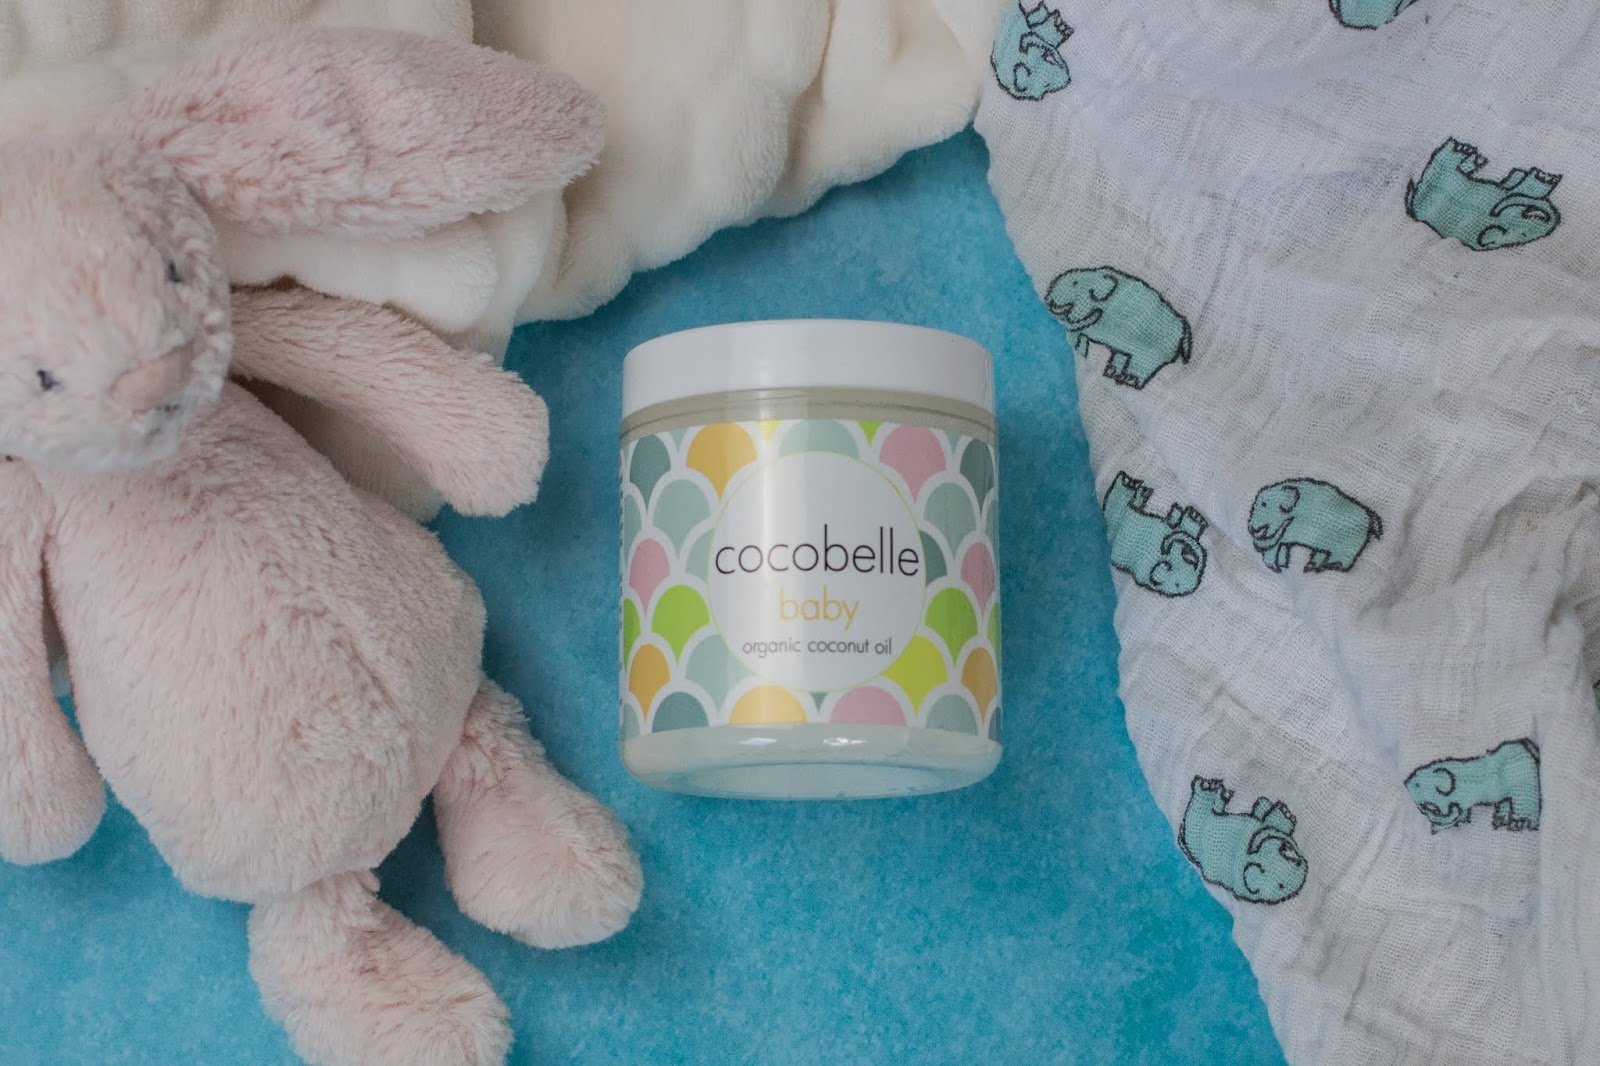 Review Of Cocobelle Baby Coconut Oil And Suggestions For